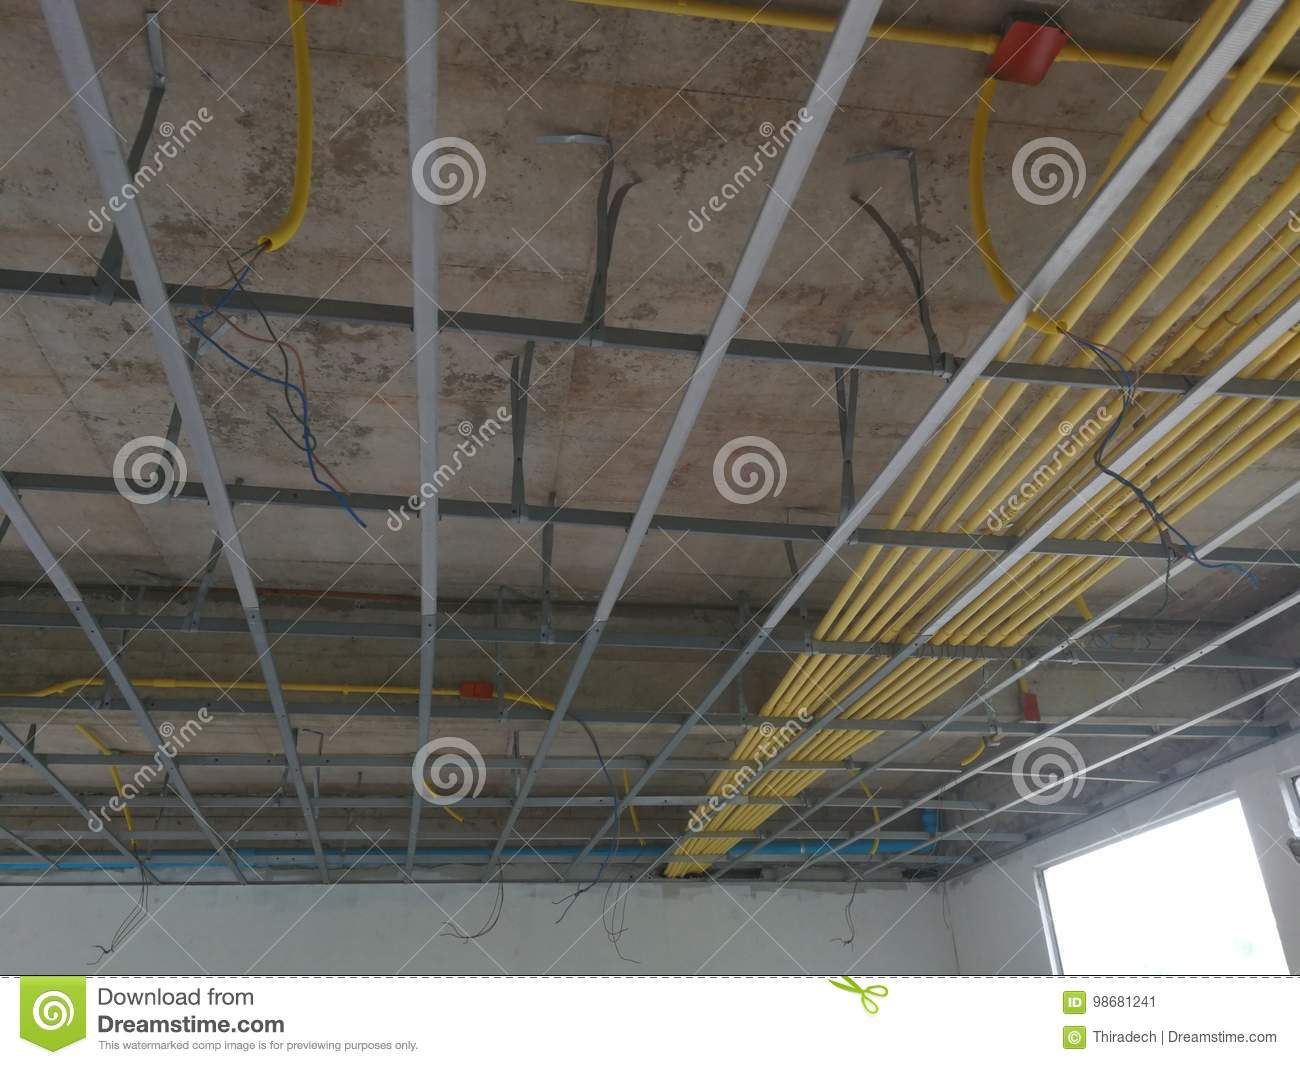 Astonishing Install The Ceiling Frame And Wiring Pipe Stock Image Image Of Wiring Cloud Nuvitbieswglorg